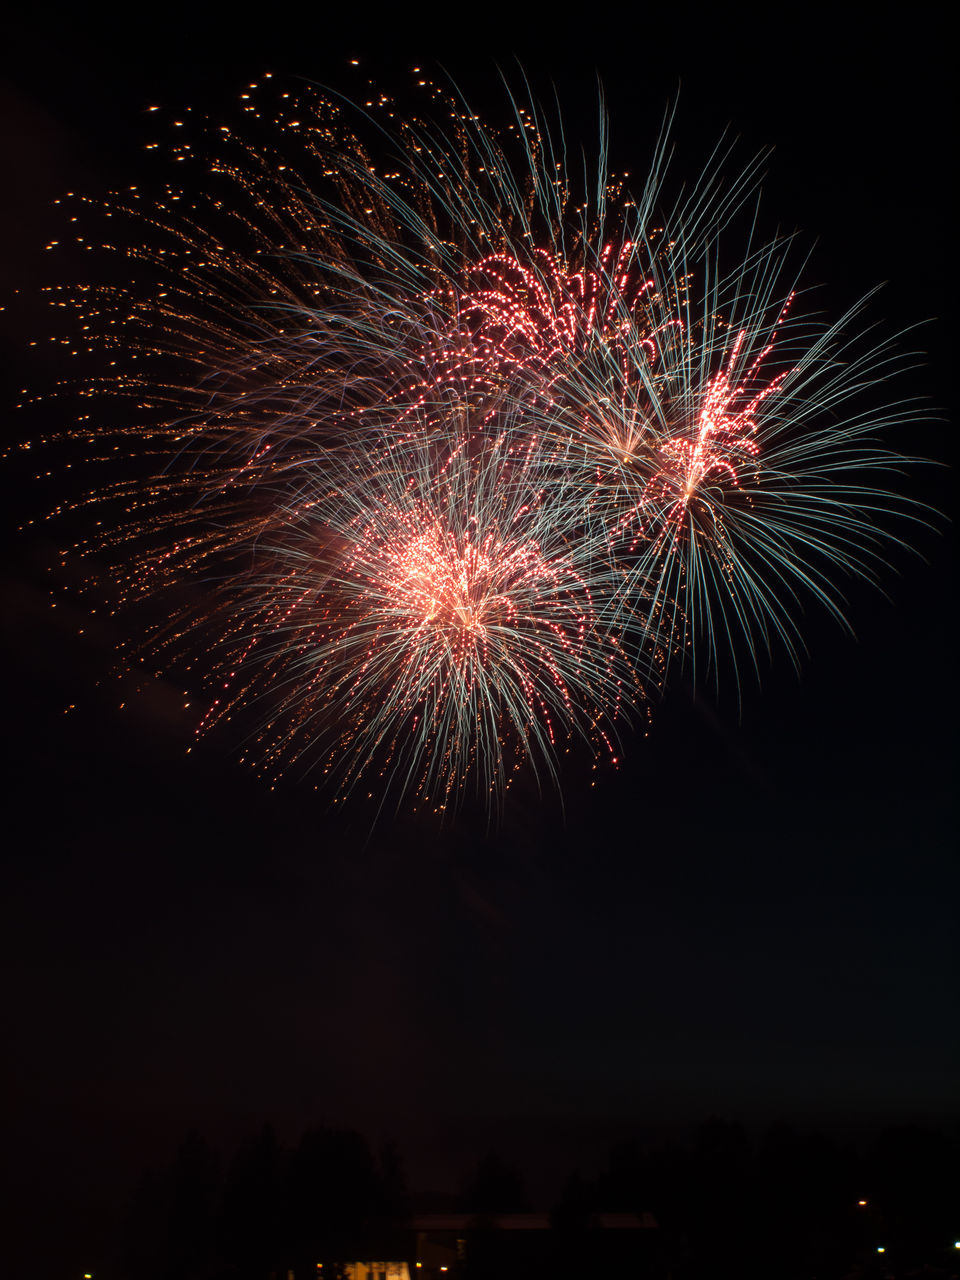 night, illuminated, firework, motion, celebration, firework display, arts culture and entertainment, event, sky, exploding, low angle view, nature, no people, glowing, long exposure, firework - man made object, blurred motion, multi colored, outdoors, light, sparks, explosive